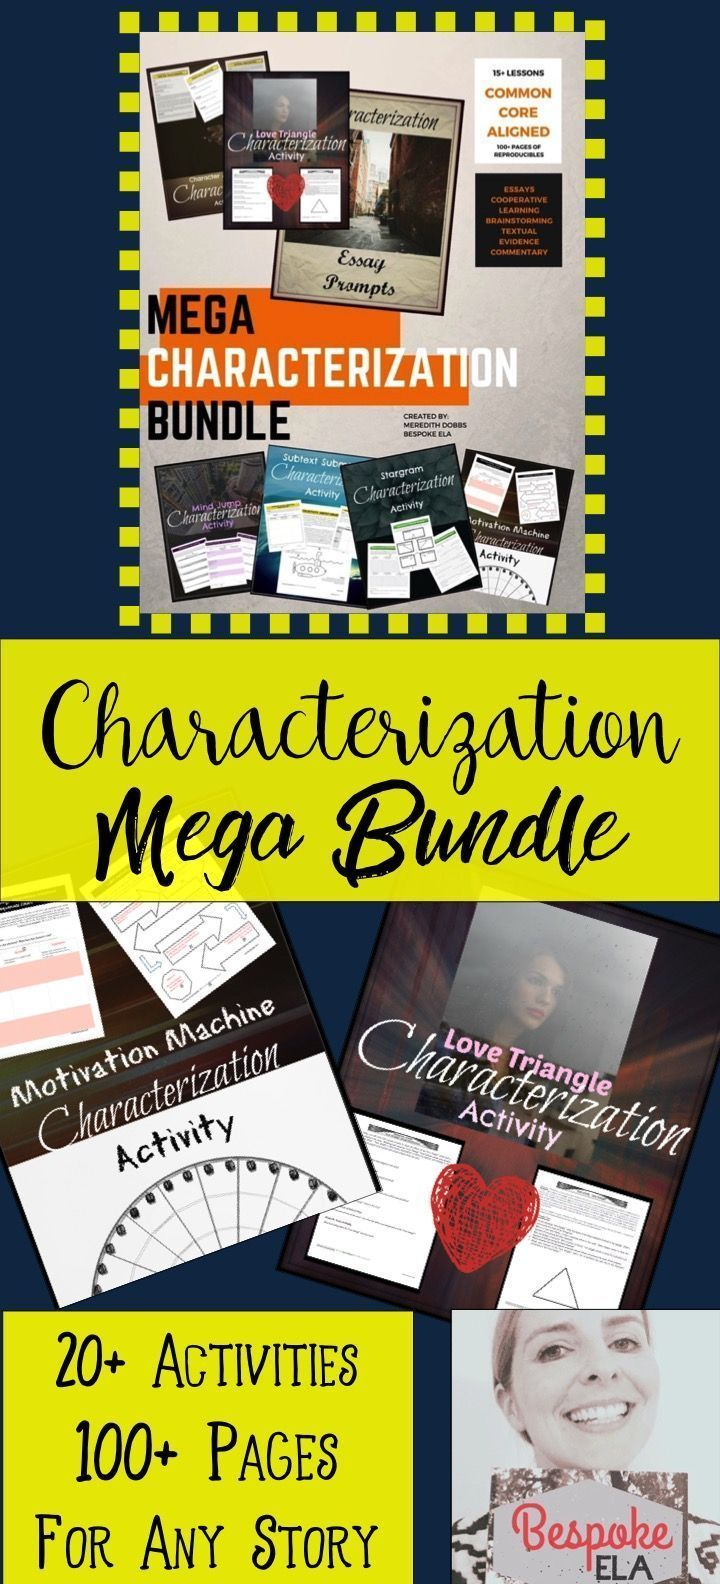 This bundle consists of 15+ multi-lesson activities to get your students involved in analyzing one of the key literary elements: characterization. It also includes Characterization QUICK PICKS, and all activities can be used with ANY TEXT, NOVEL, or SHORT STORIES.  Great for literary analysis and reading workshop in middle school and high school English Language Arts.  by Bespoke ELA